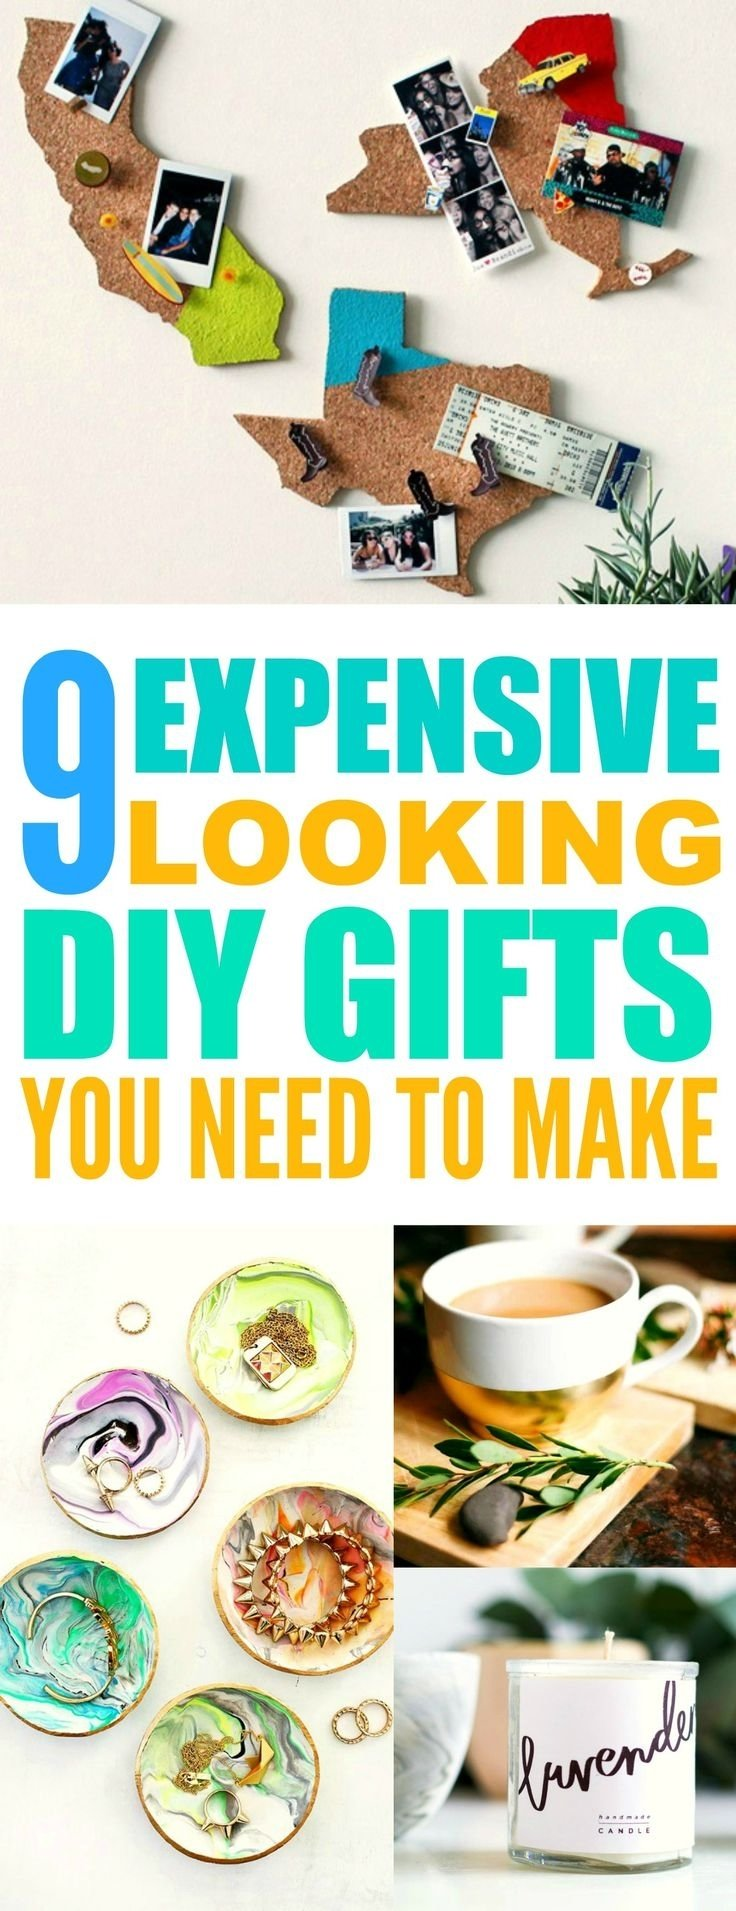 224 best gift ideas images on pinterest | amazing gifts, gift ideas